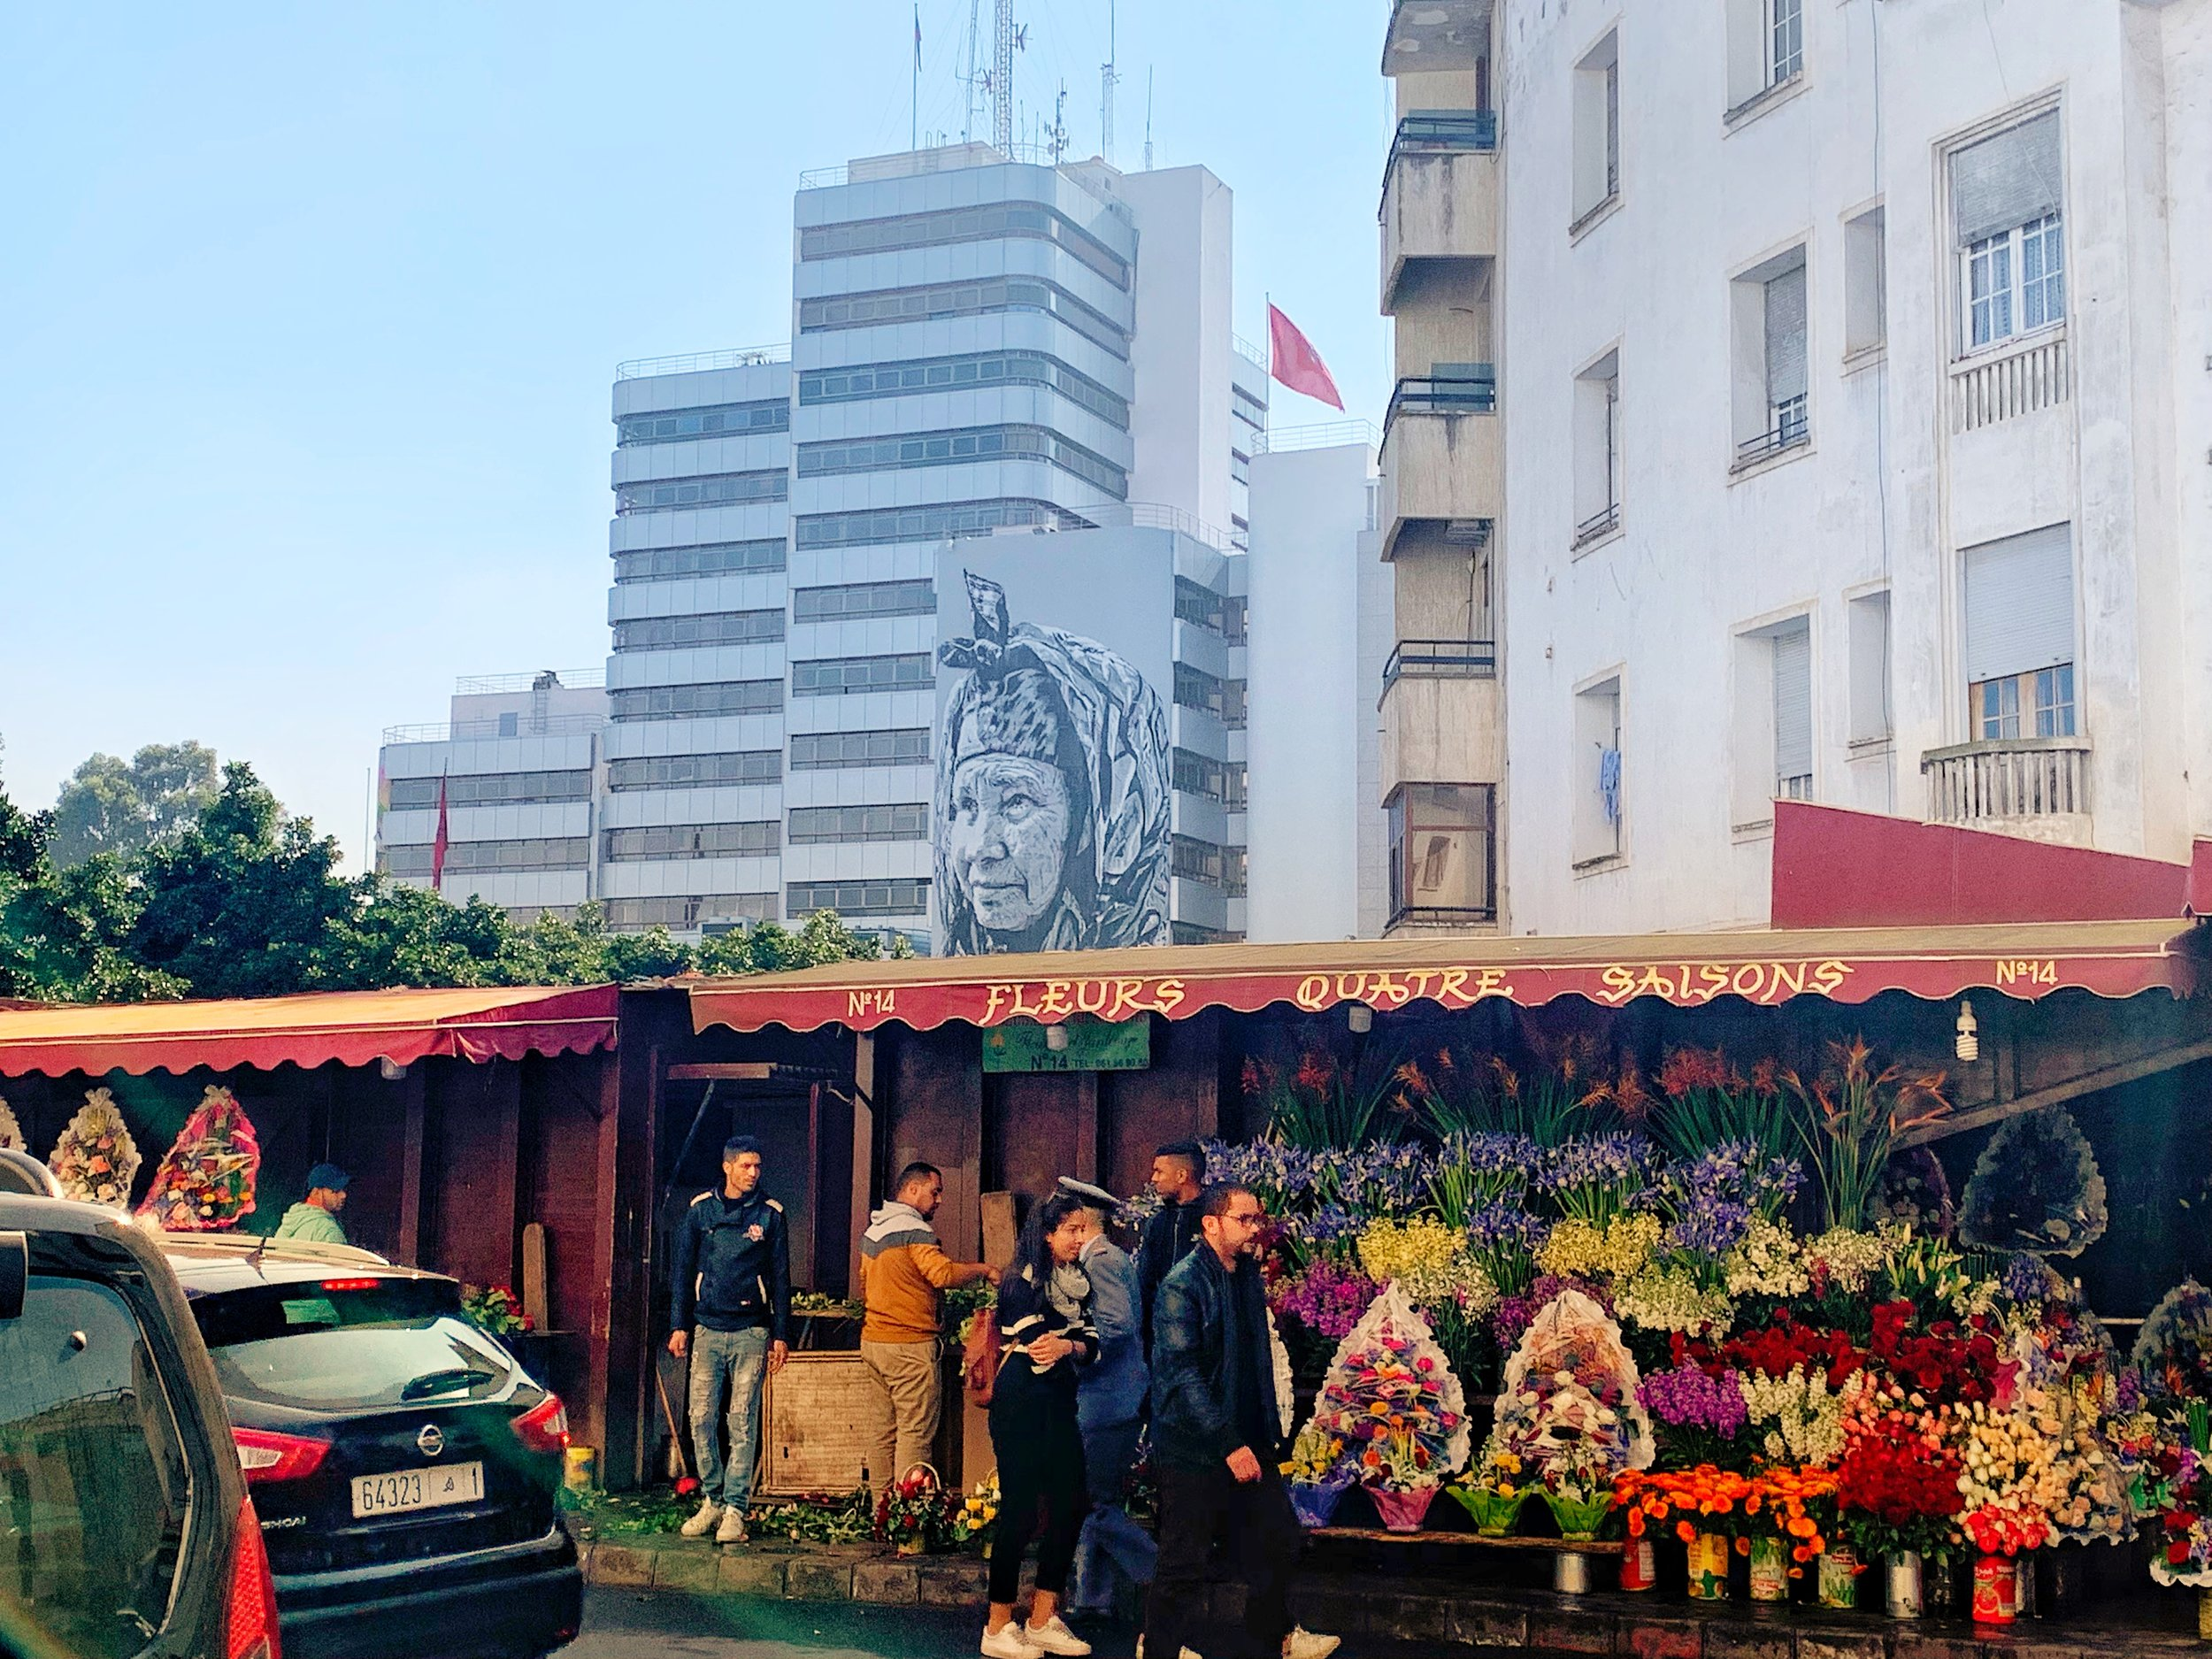 Copy of Flower Market, Rabat